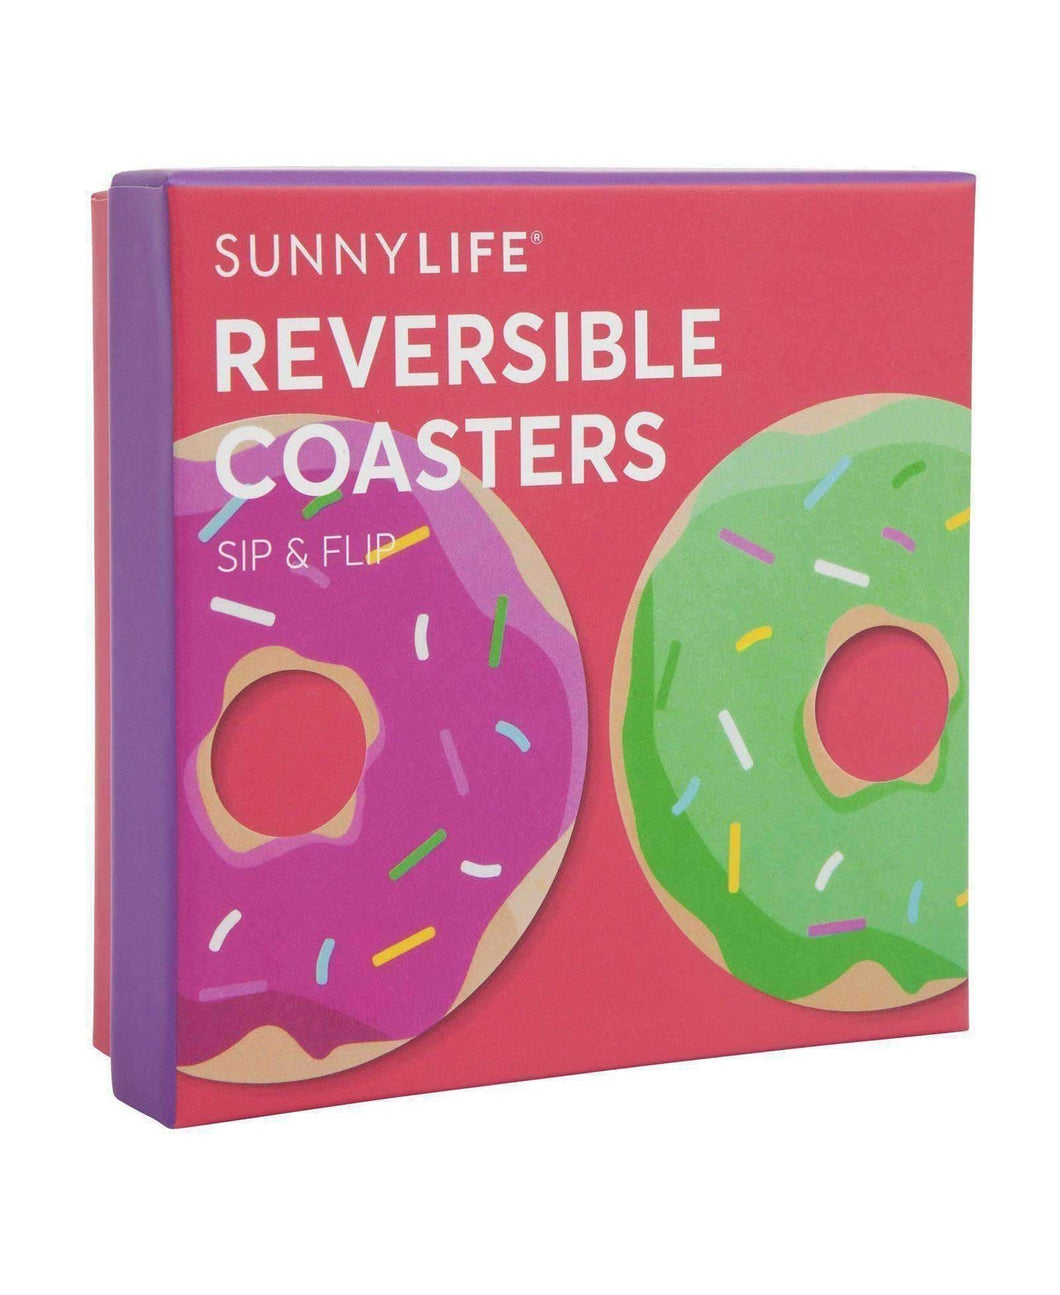 Donut Reversible Coasters